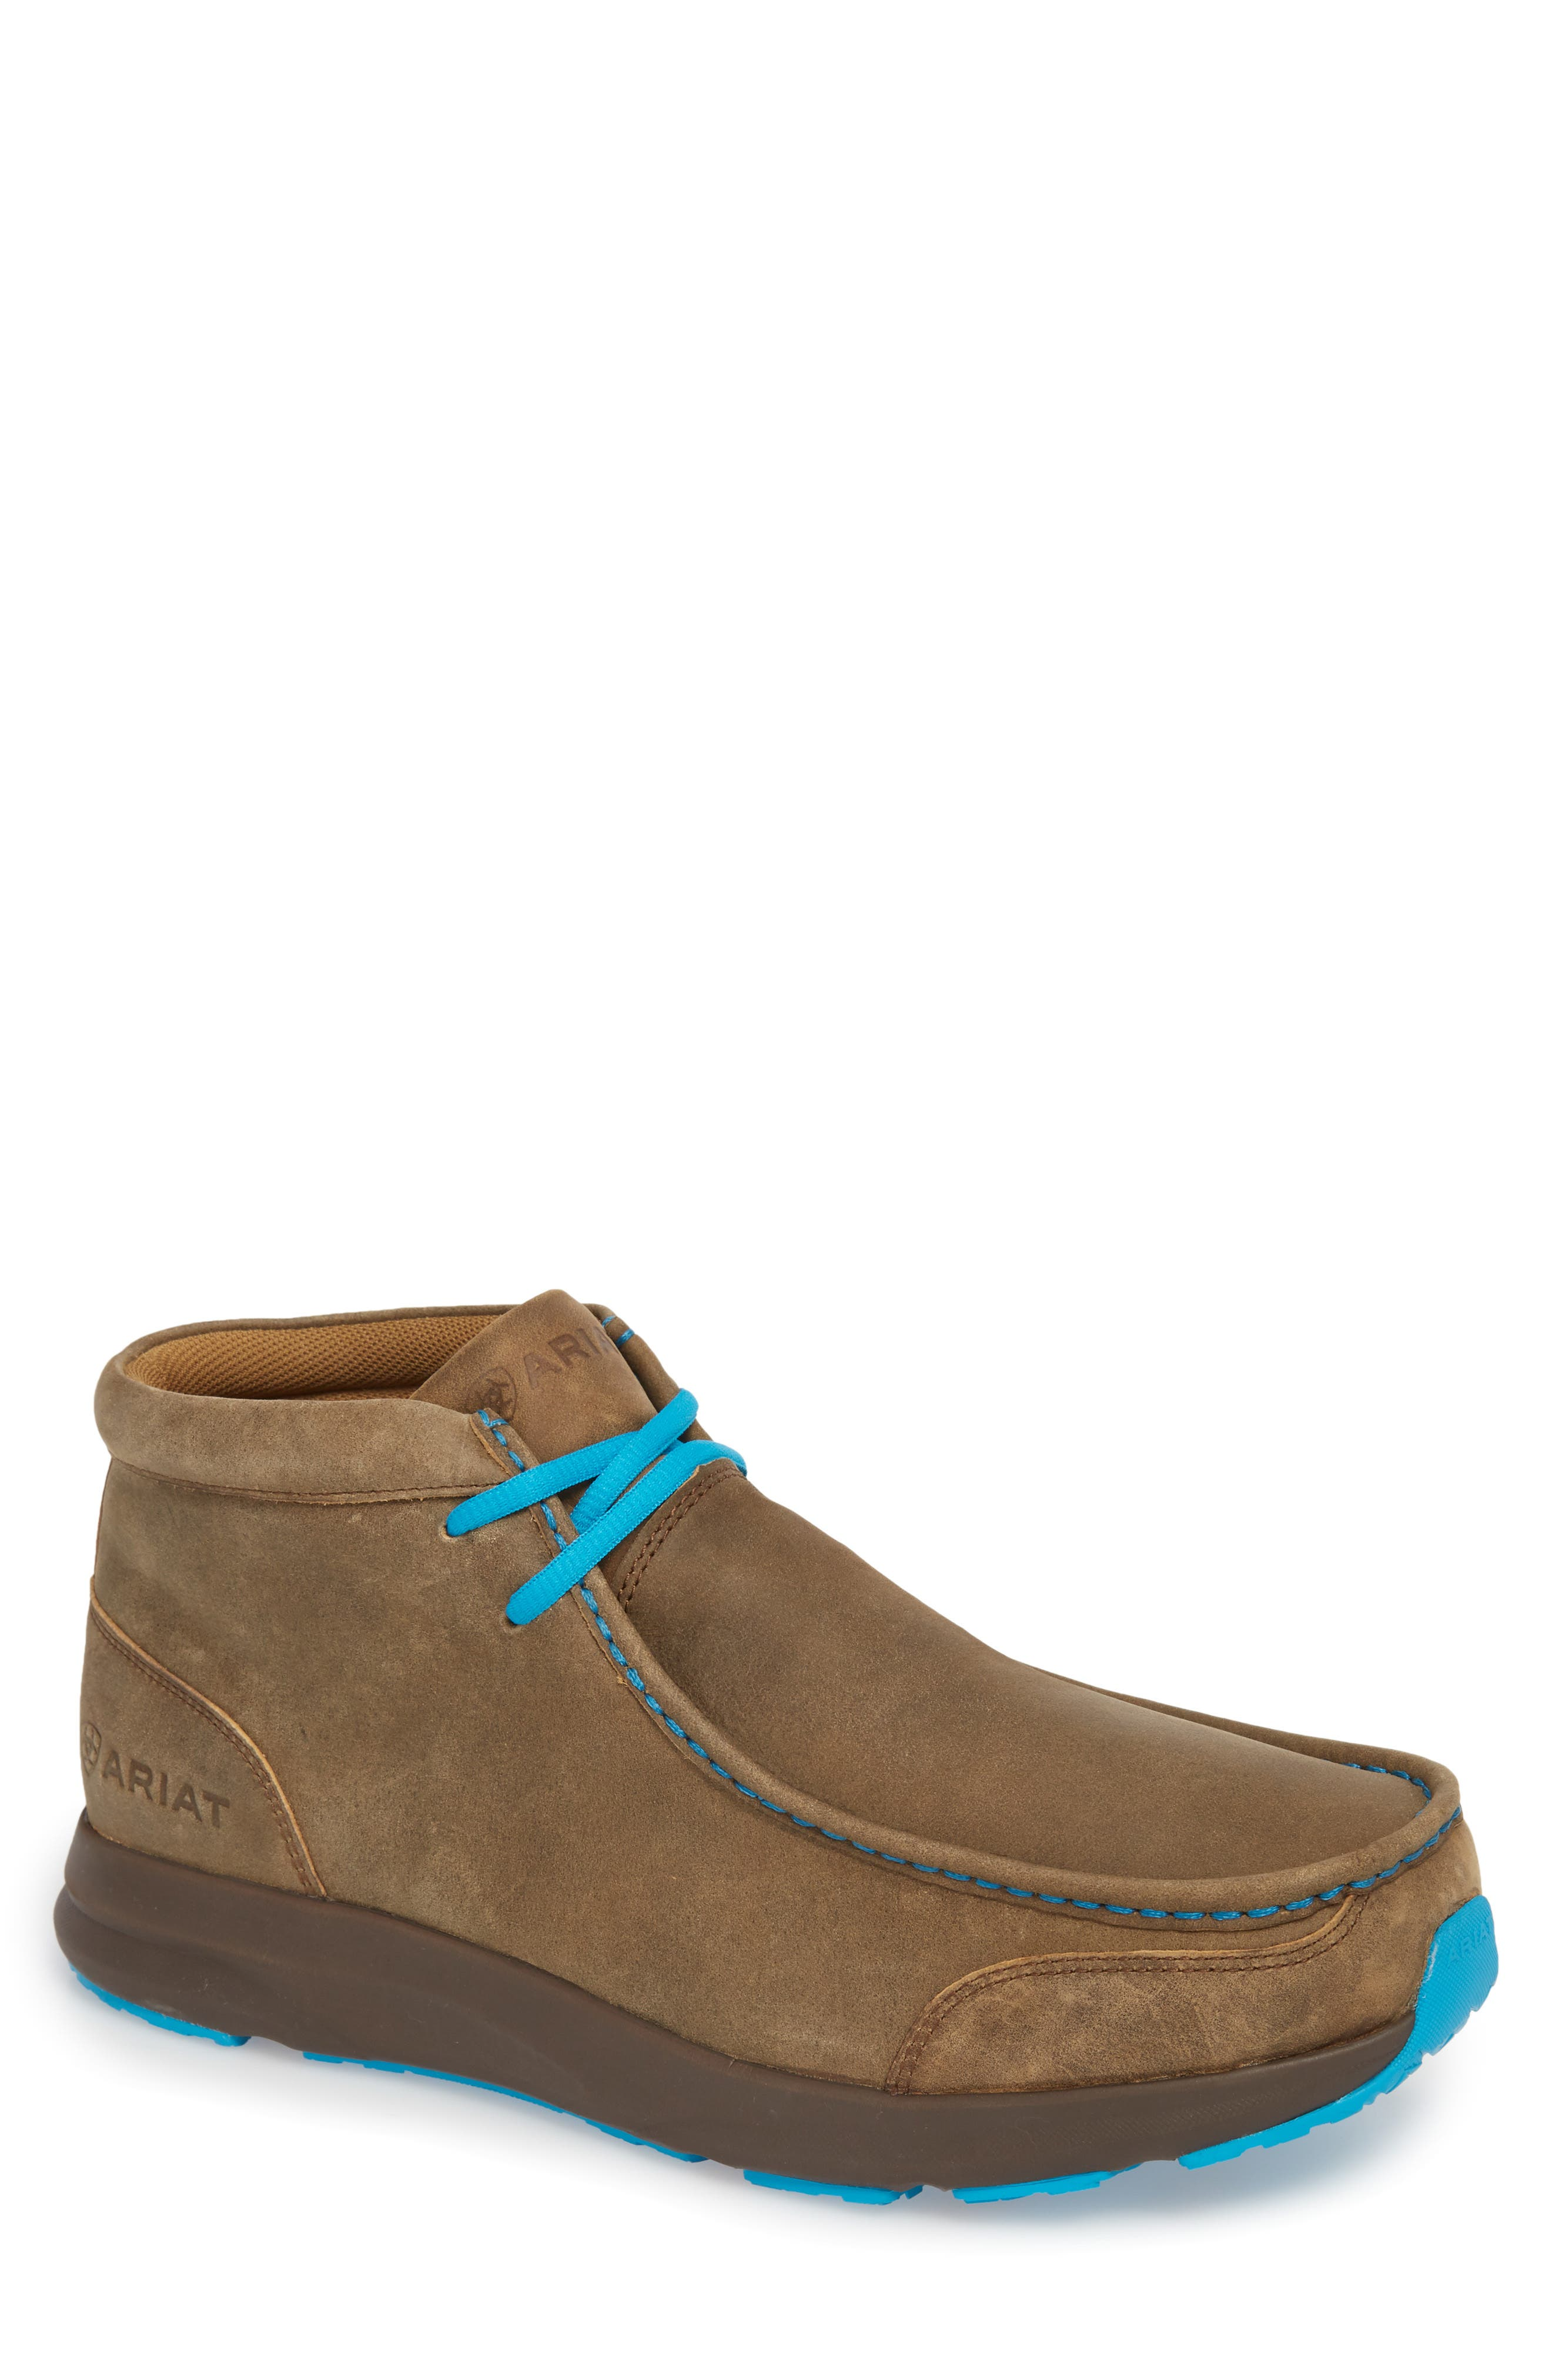 Spitfire Chukka Boot,                             Main thumbnail 1, color,                             BROWN BOMBER/ BLUE LEATHER